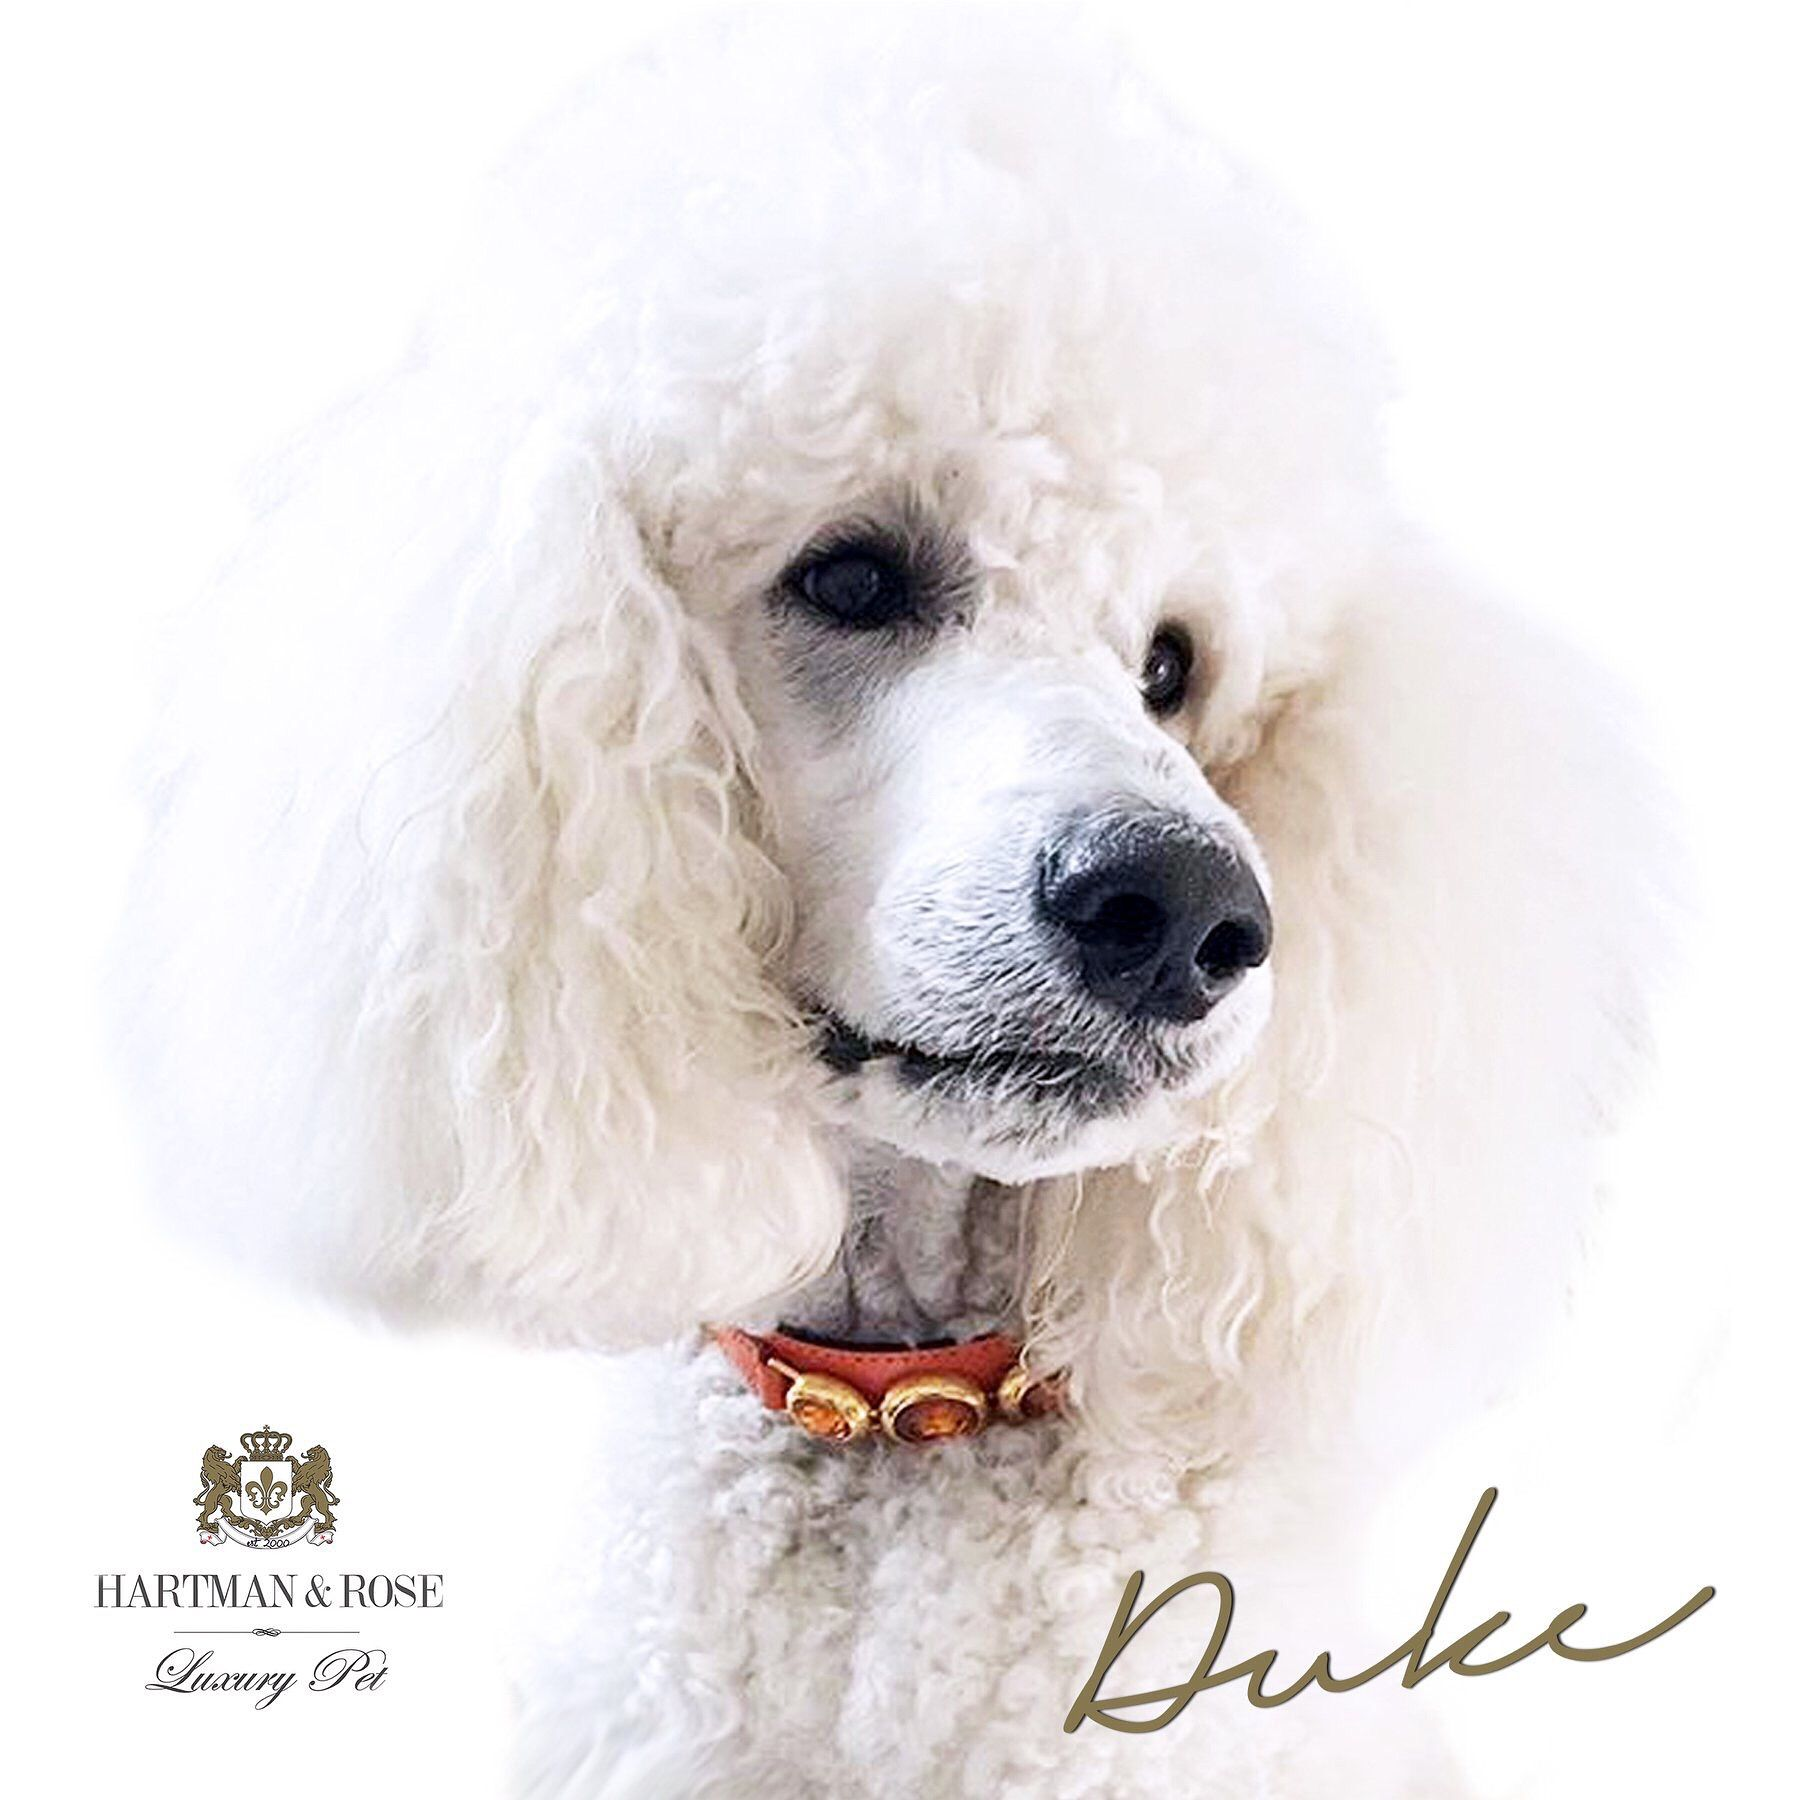 SAVE 50% - use code: AFTEREIGHT  Hartman & Rose Luxury Pet Products www.hartmanandrose.com @hartmanandrose #hartmanandrose @duke_thepoodle This handsome devil is Duke from Sydney, Australia wearing the Regency collar in tangerine. Stunning. Take the Lead & Walk in Style.  Exceptions apply ❤️